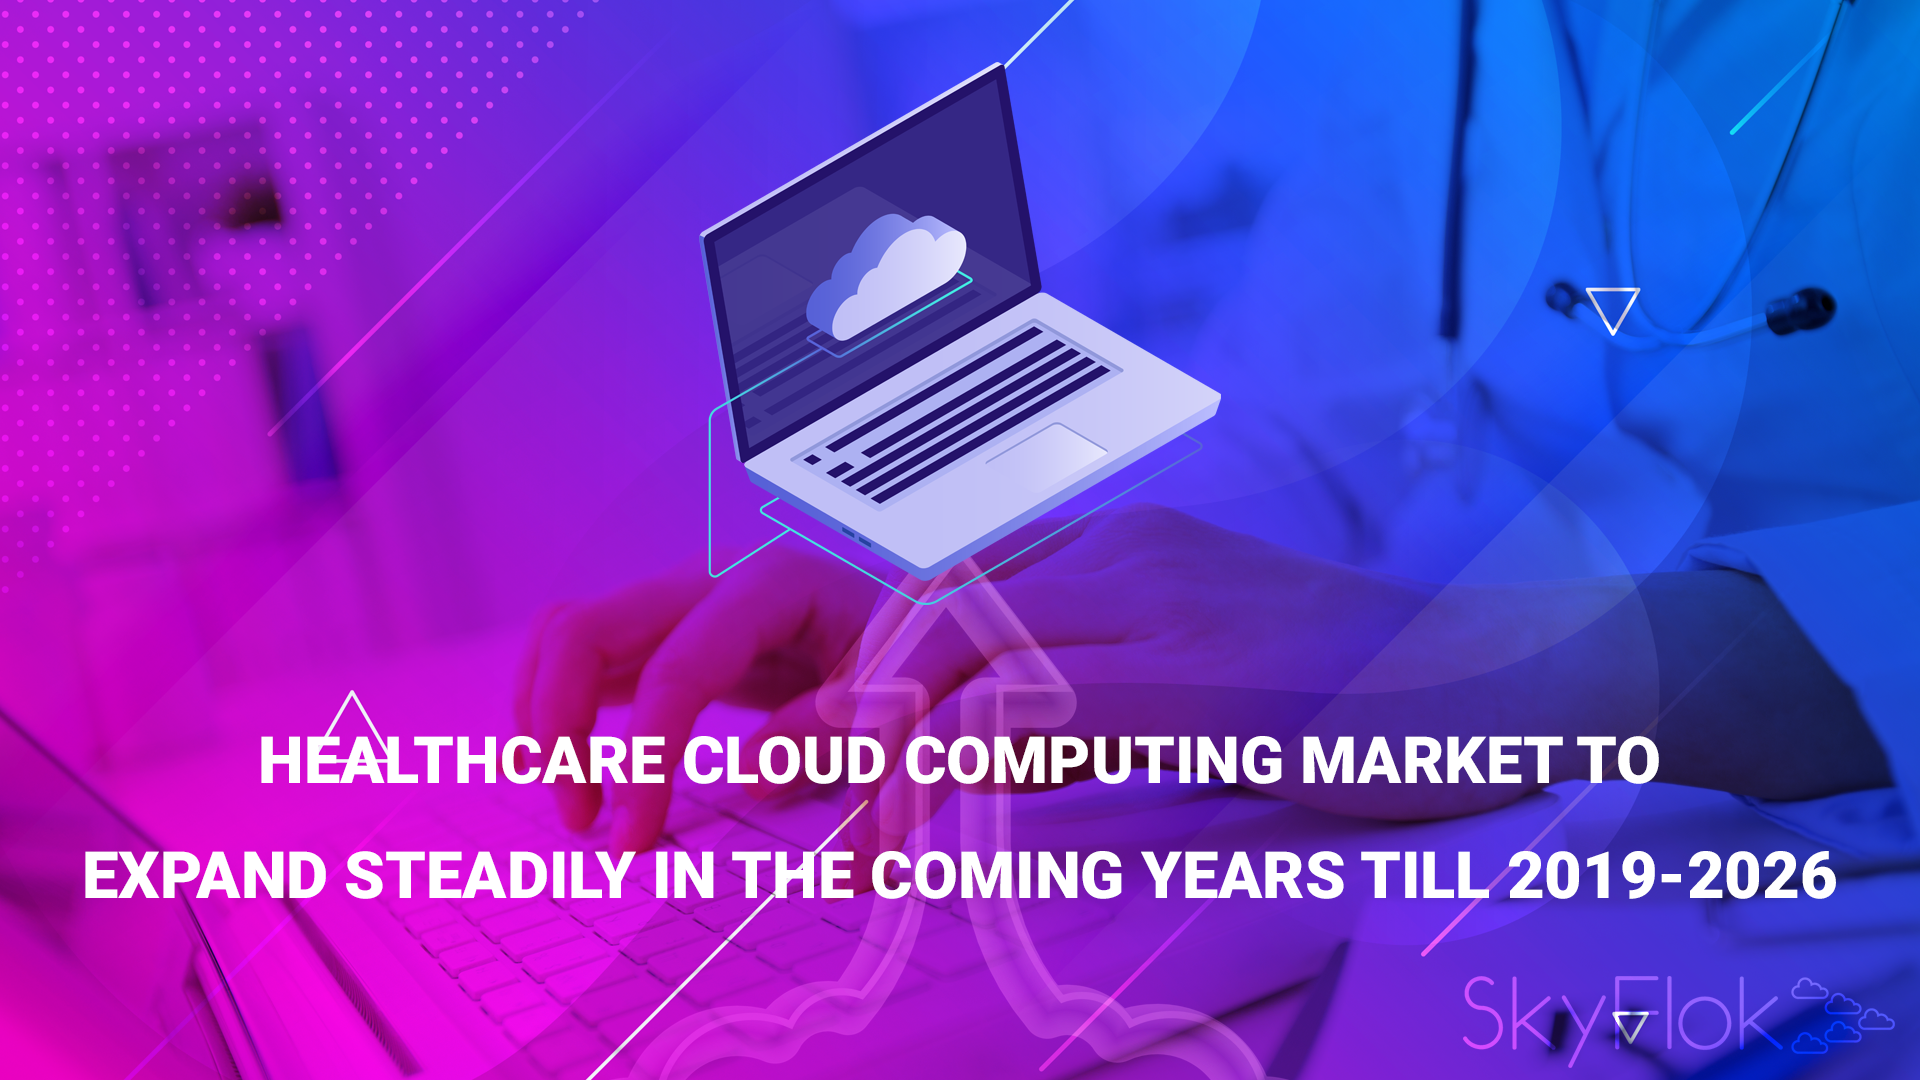 Healthcare Cloud Computing Market to Expand Steadily in the Coming Years till 2019-2026